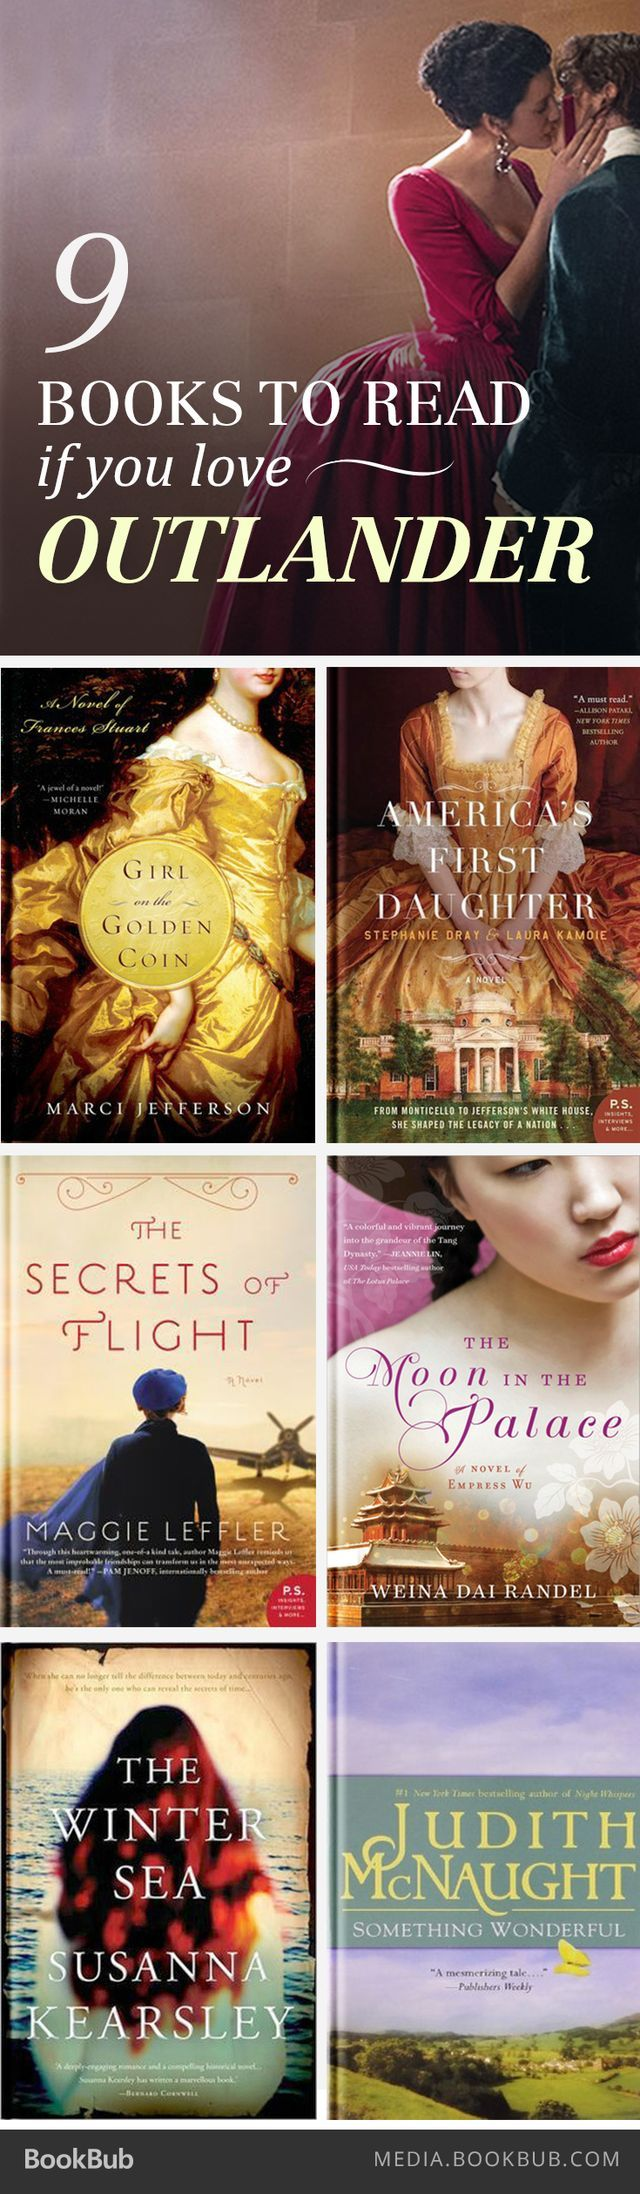 9 Books to Read While Waiting for 'Outlander' Season 3 - If you love Diana Gabaldon's Outlander, check out these 9 outstanding book recommendations.